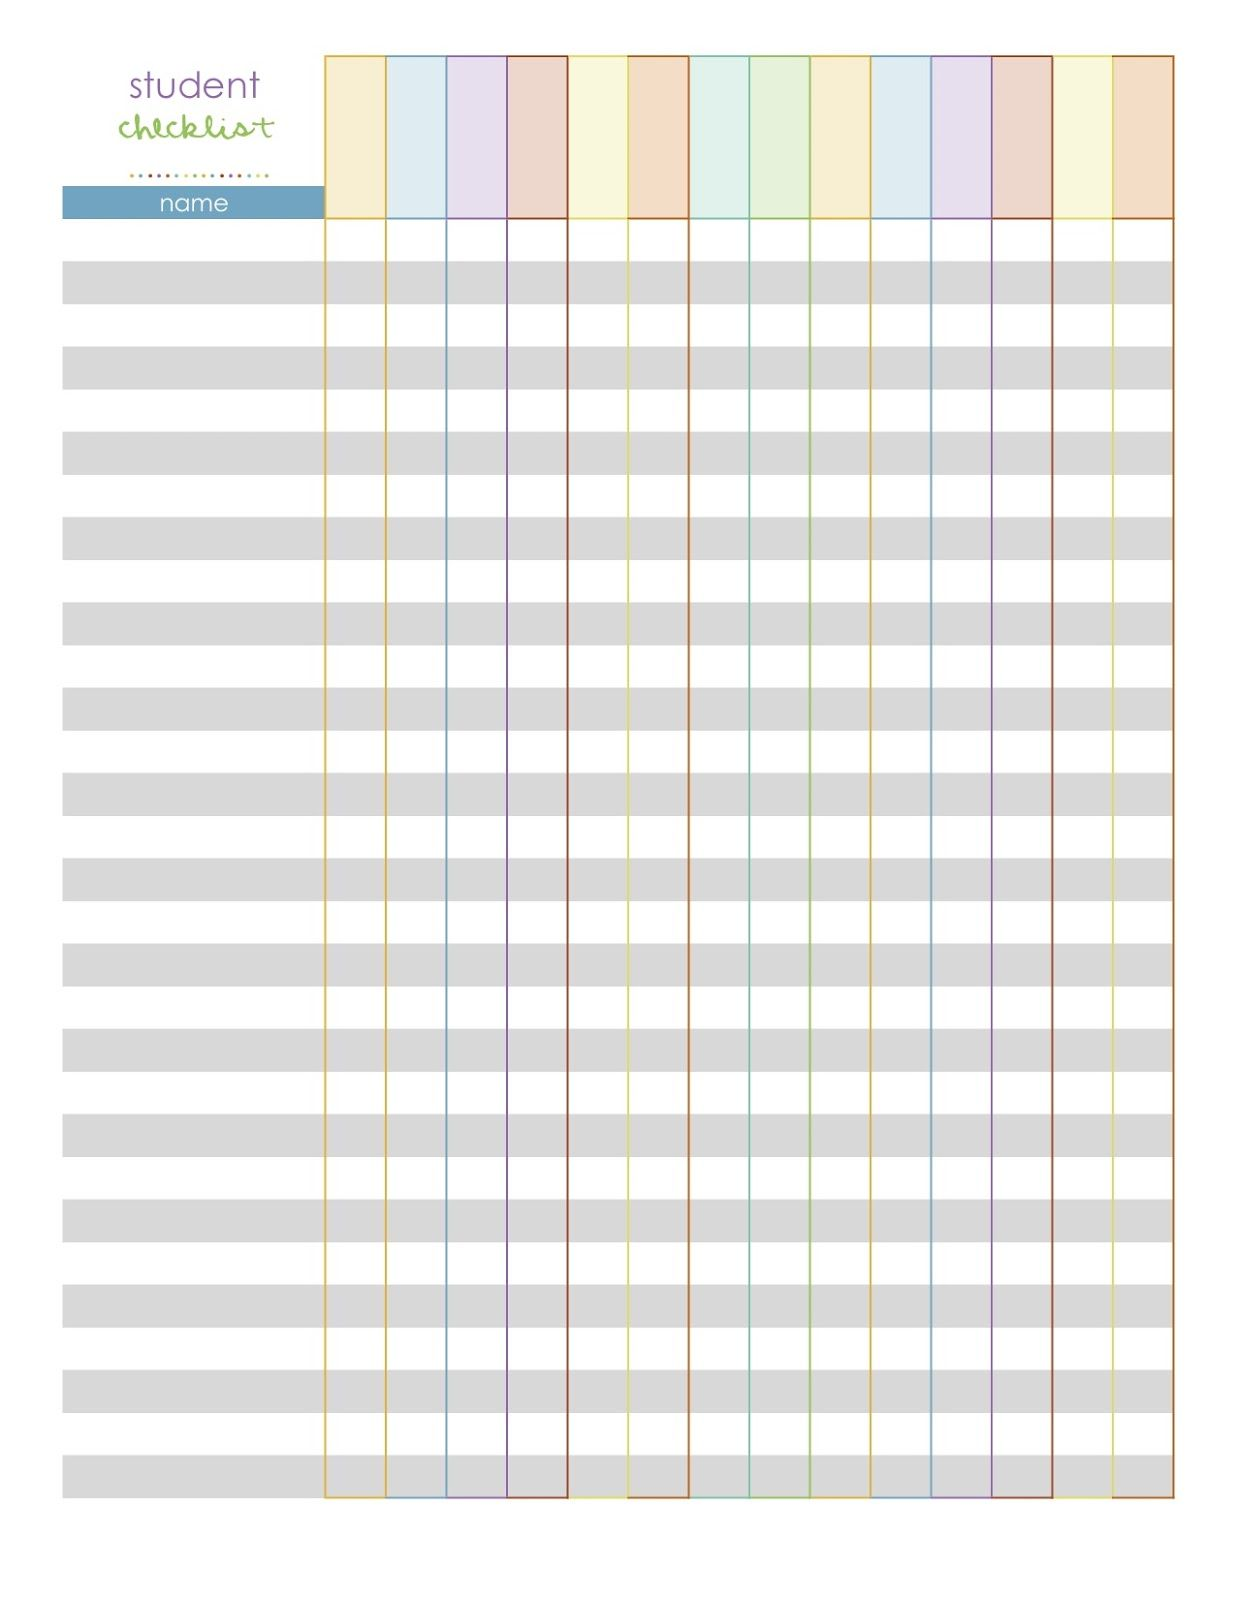 This Gradebook Template Is For Use With Erin Condren Planners It